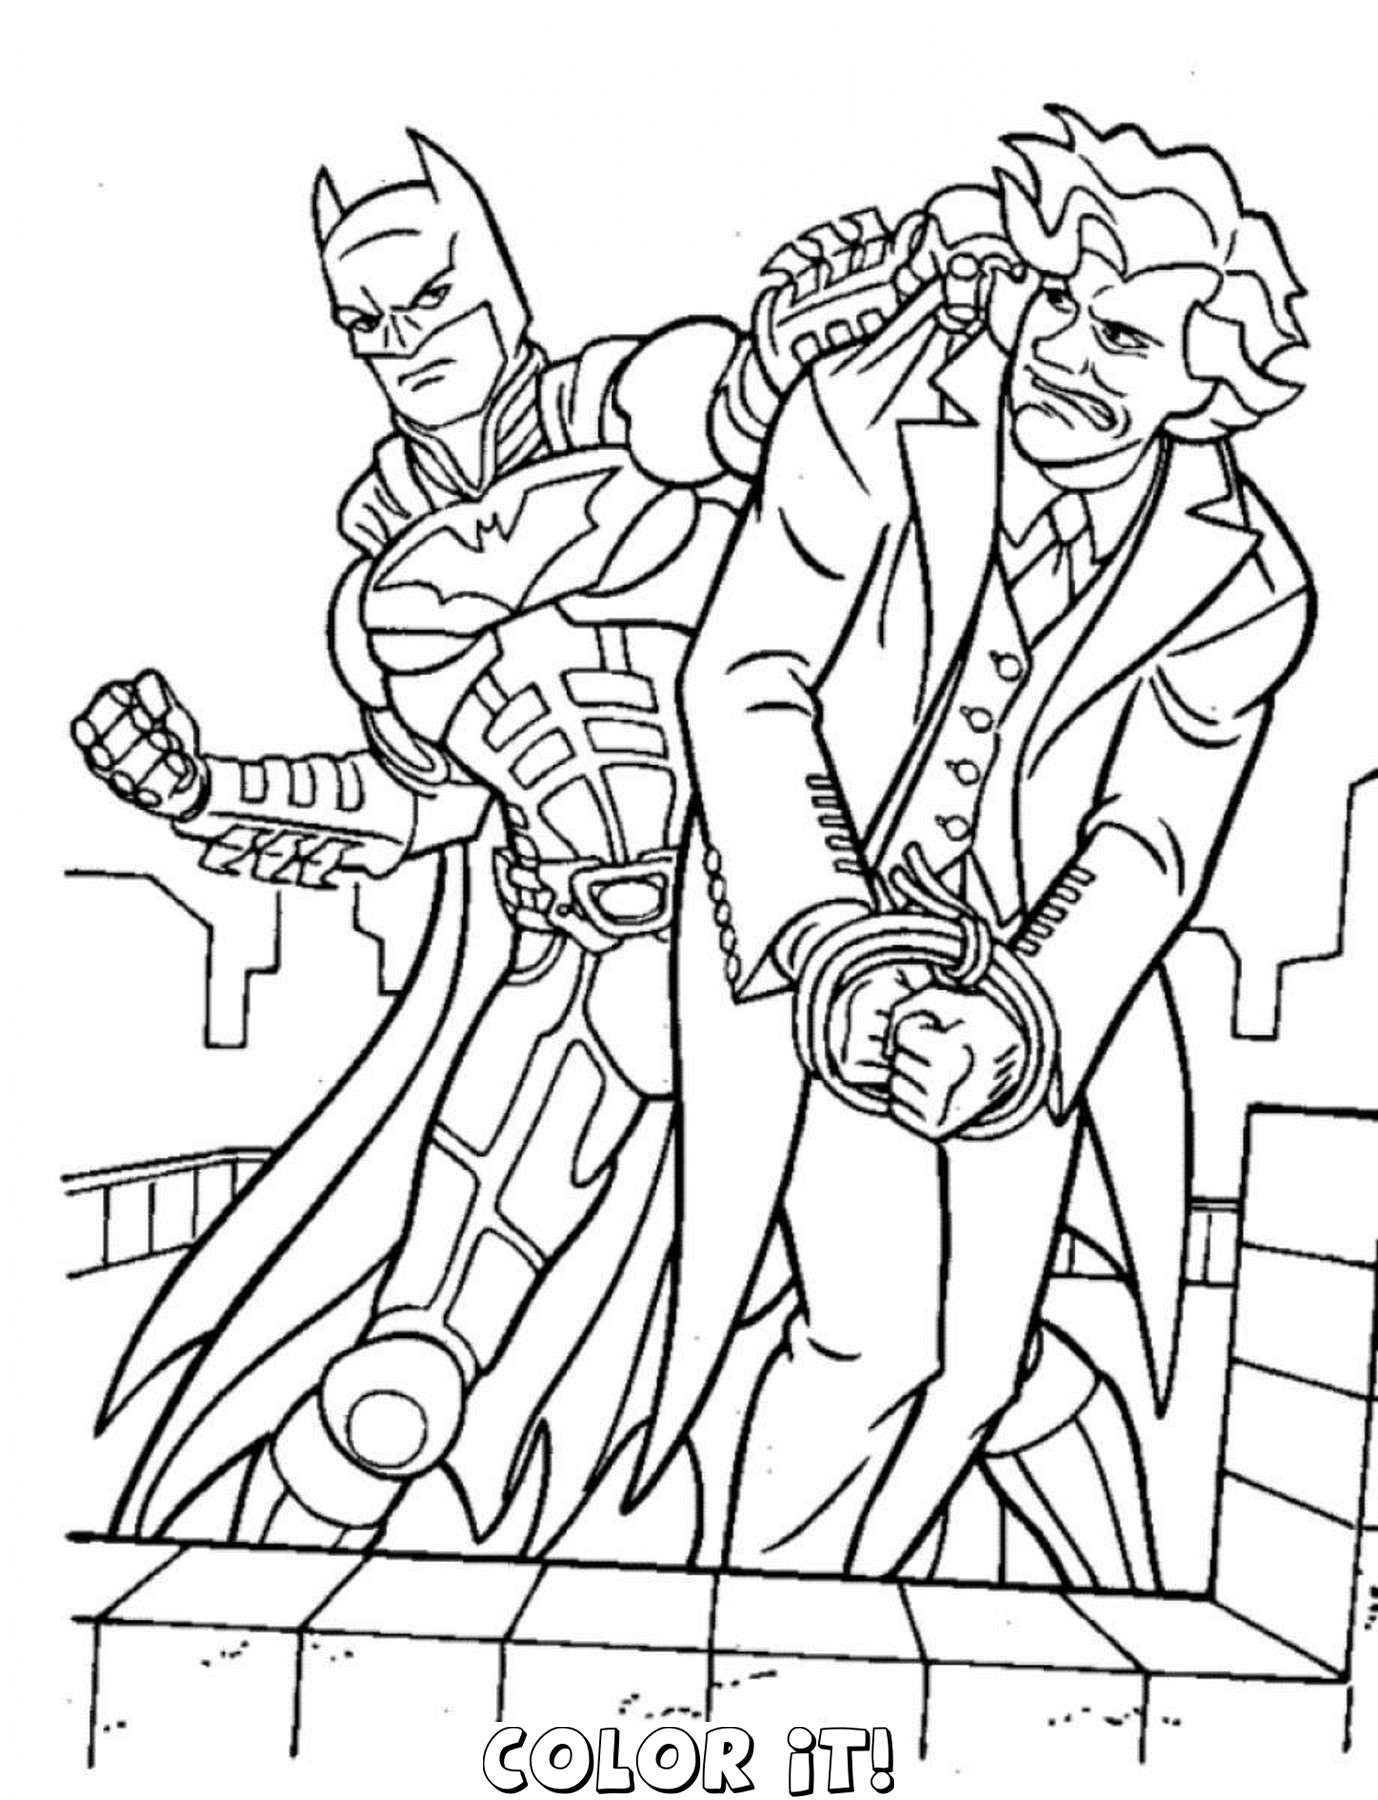 Free Printable Batman Coloring Pages For Kids Super Hero Costumes - Free Printable Batman Coloring Pages